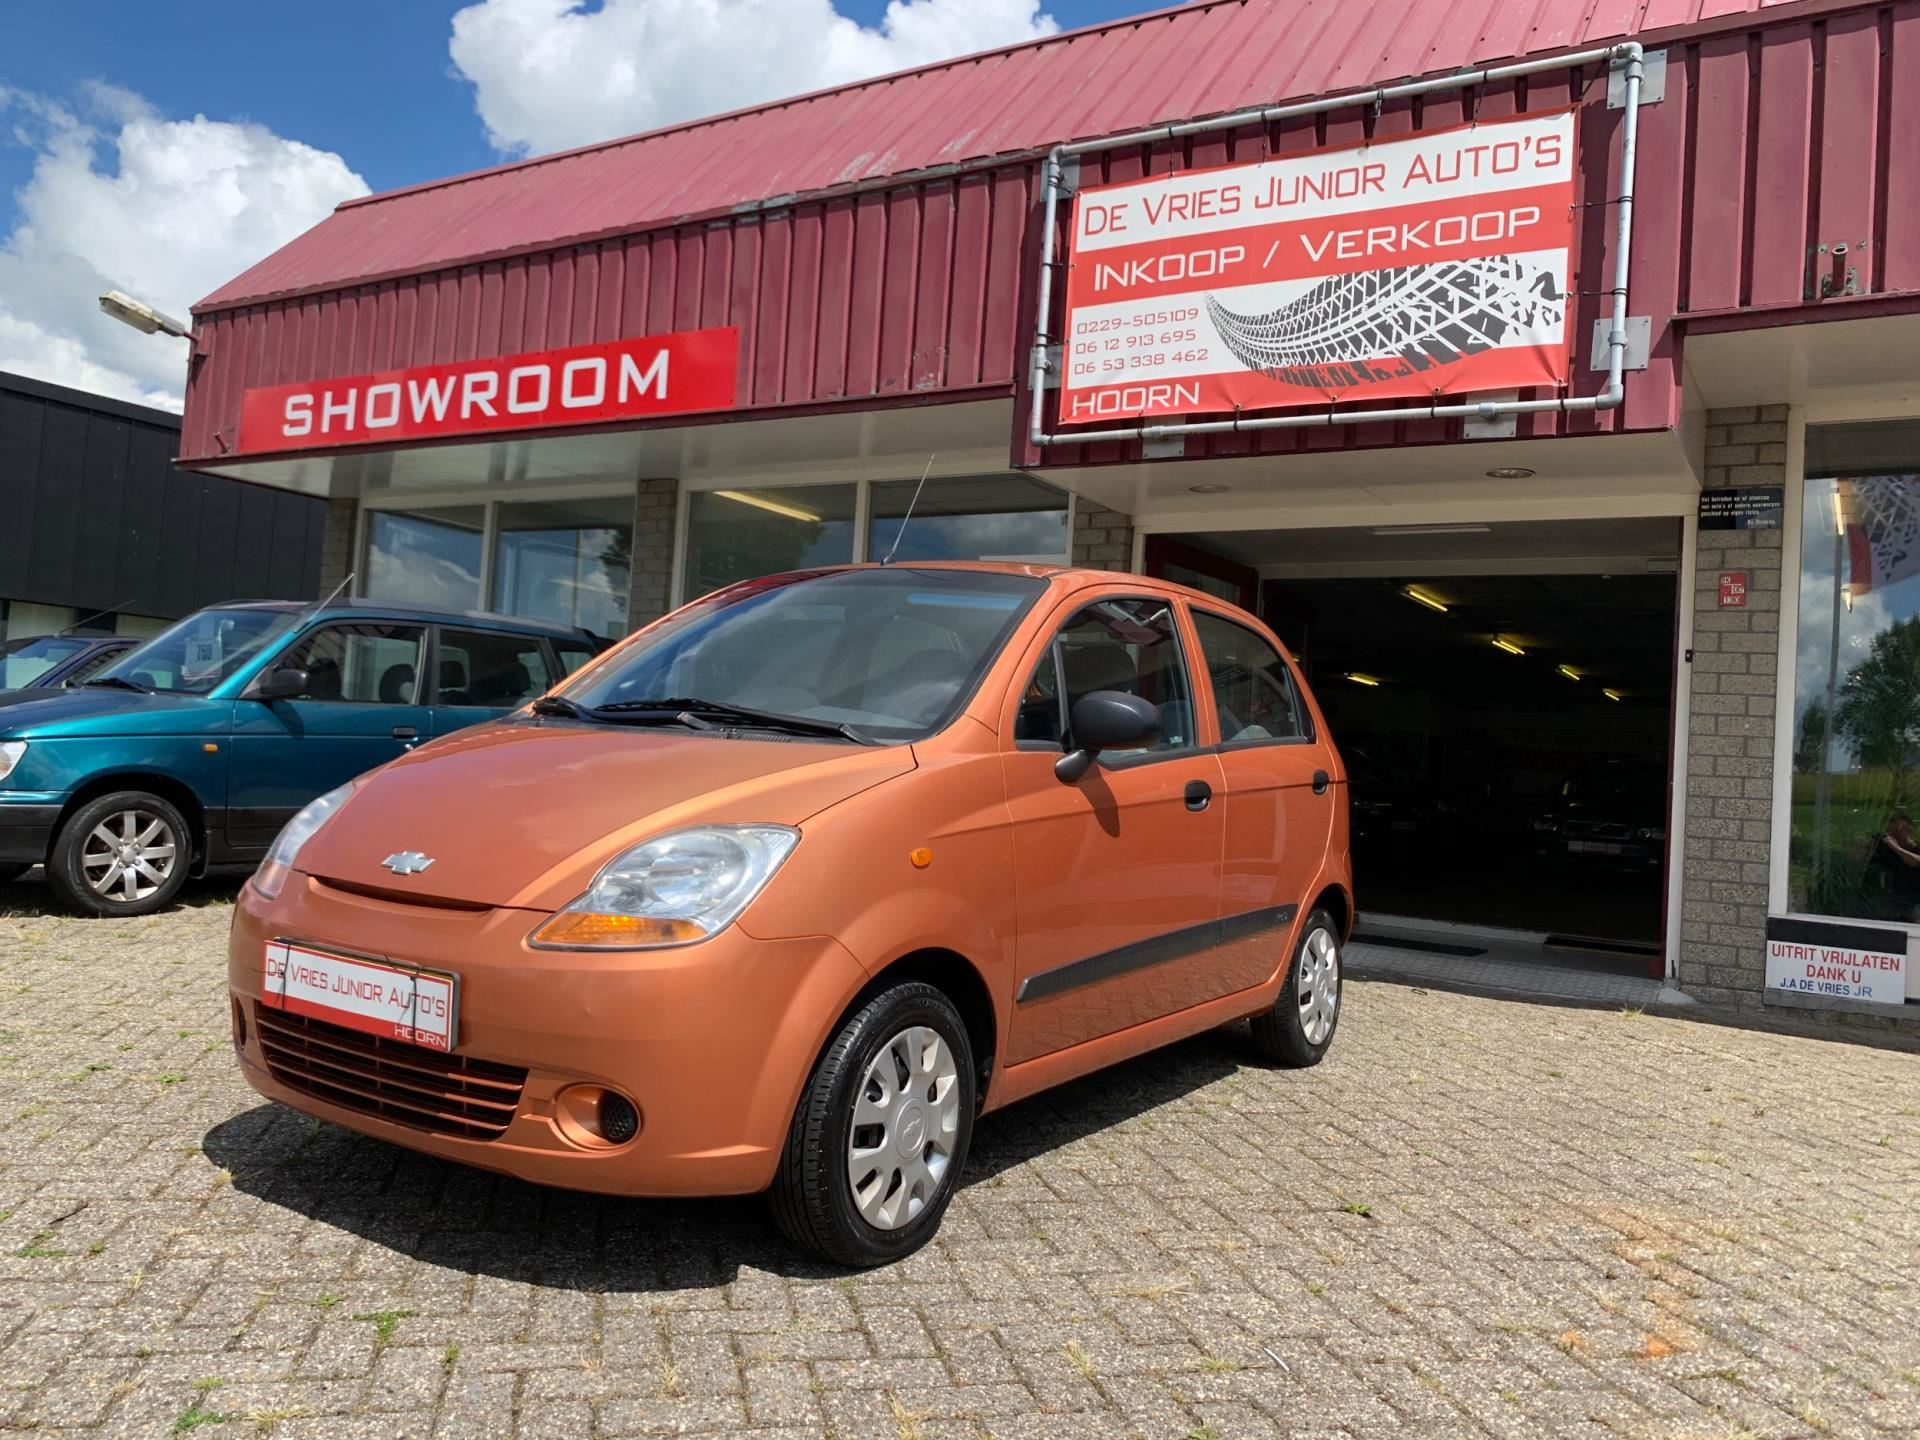 Chevrolet Matiz occasion - De Vries Junior Auto's